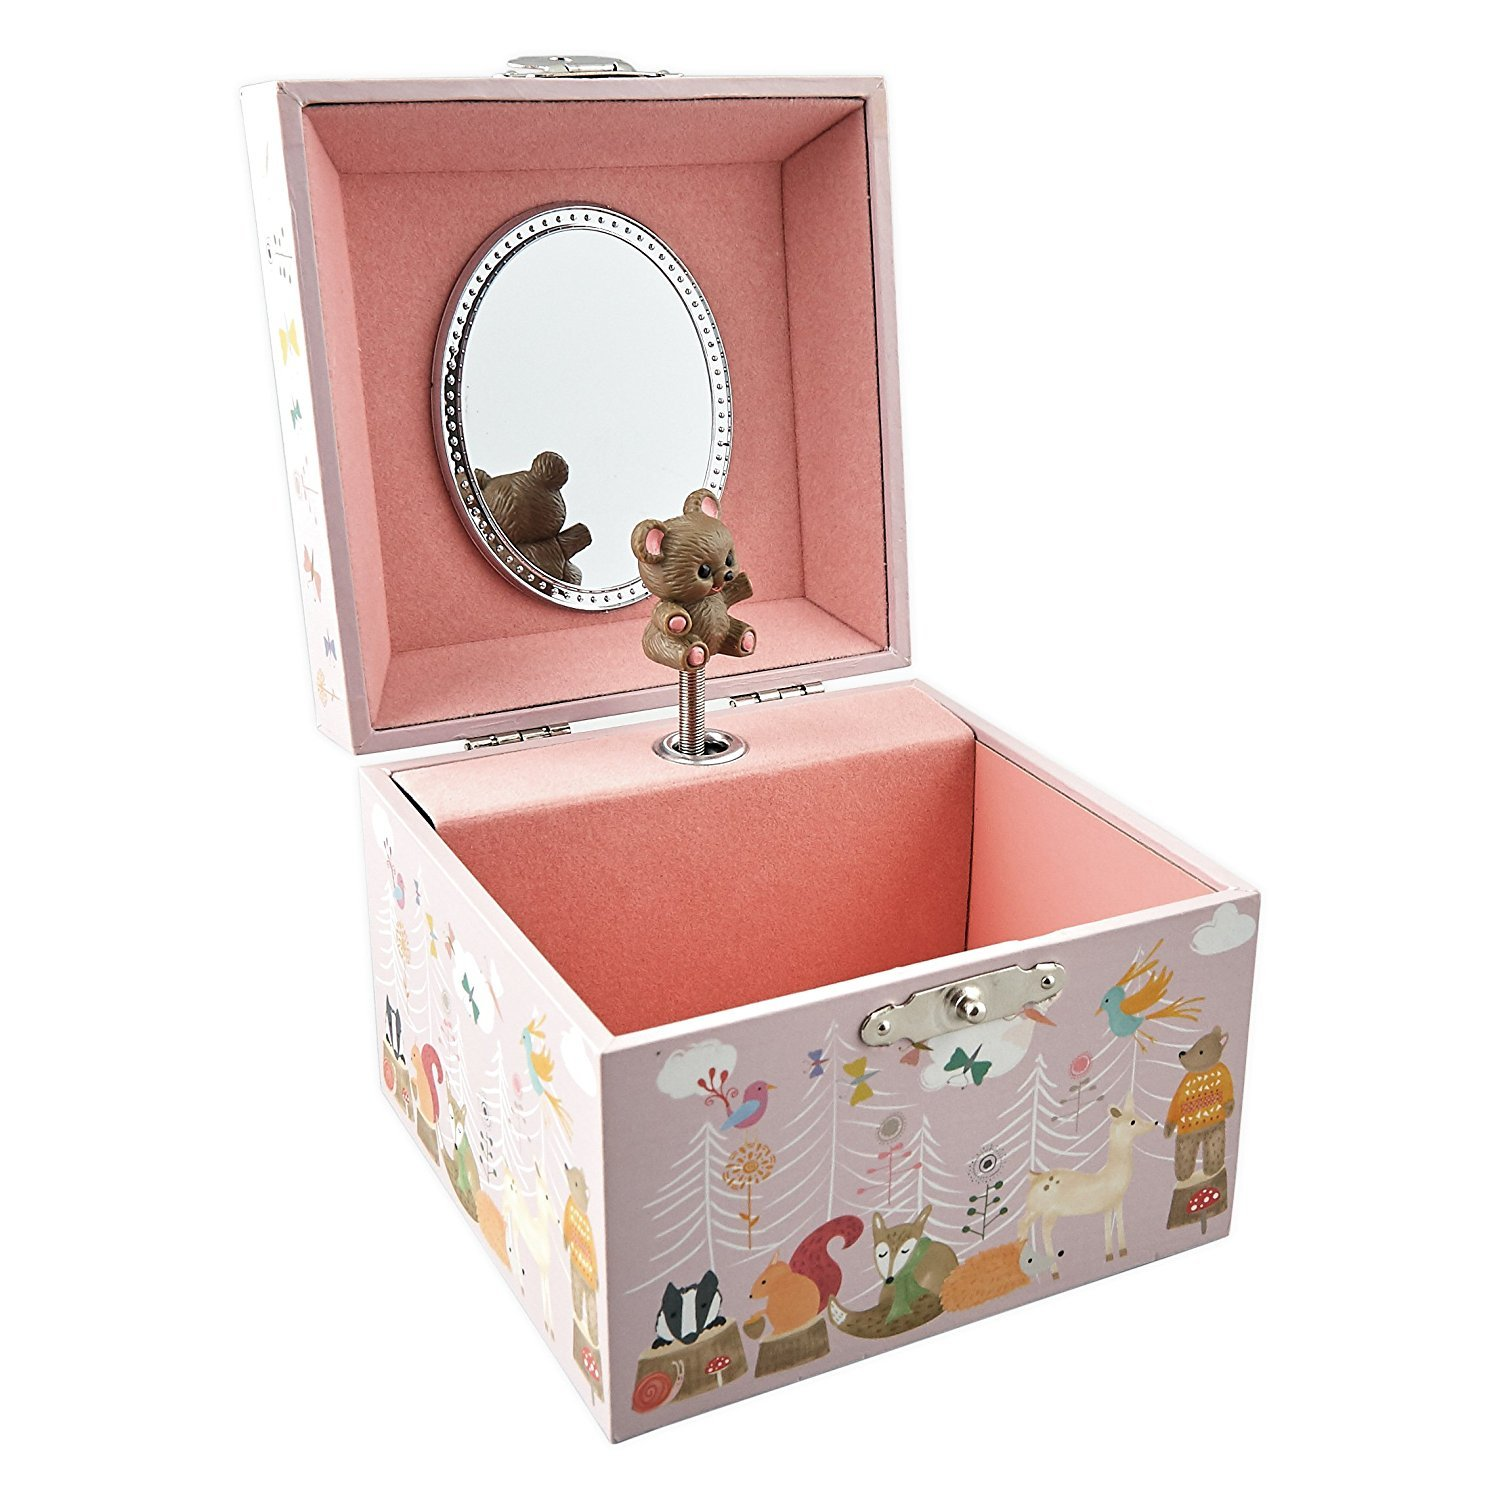 Woodland Animal Musical Jewellery Box by Floss & Rock